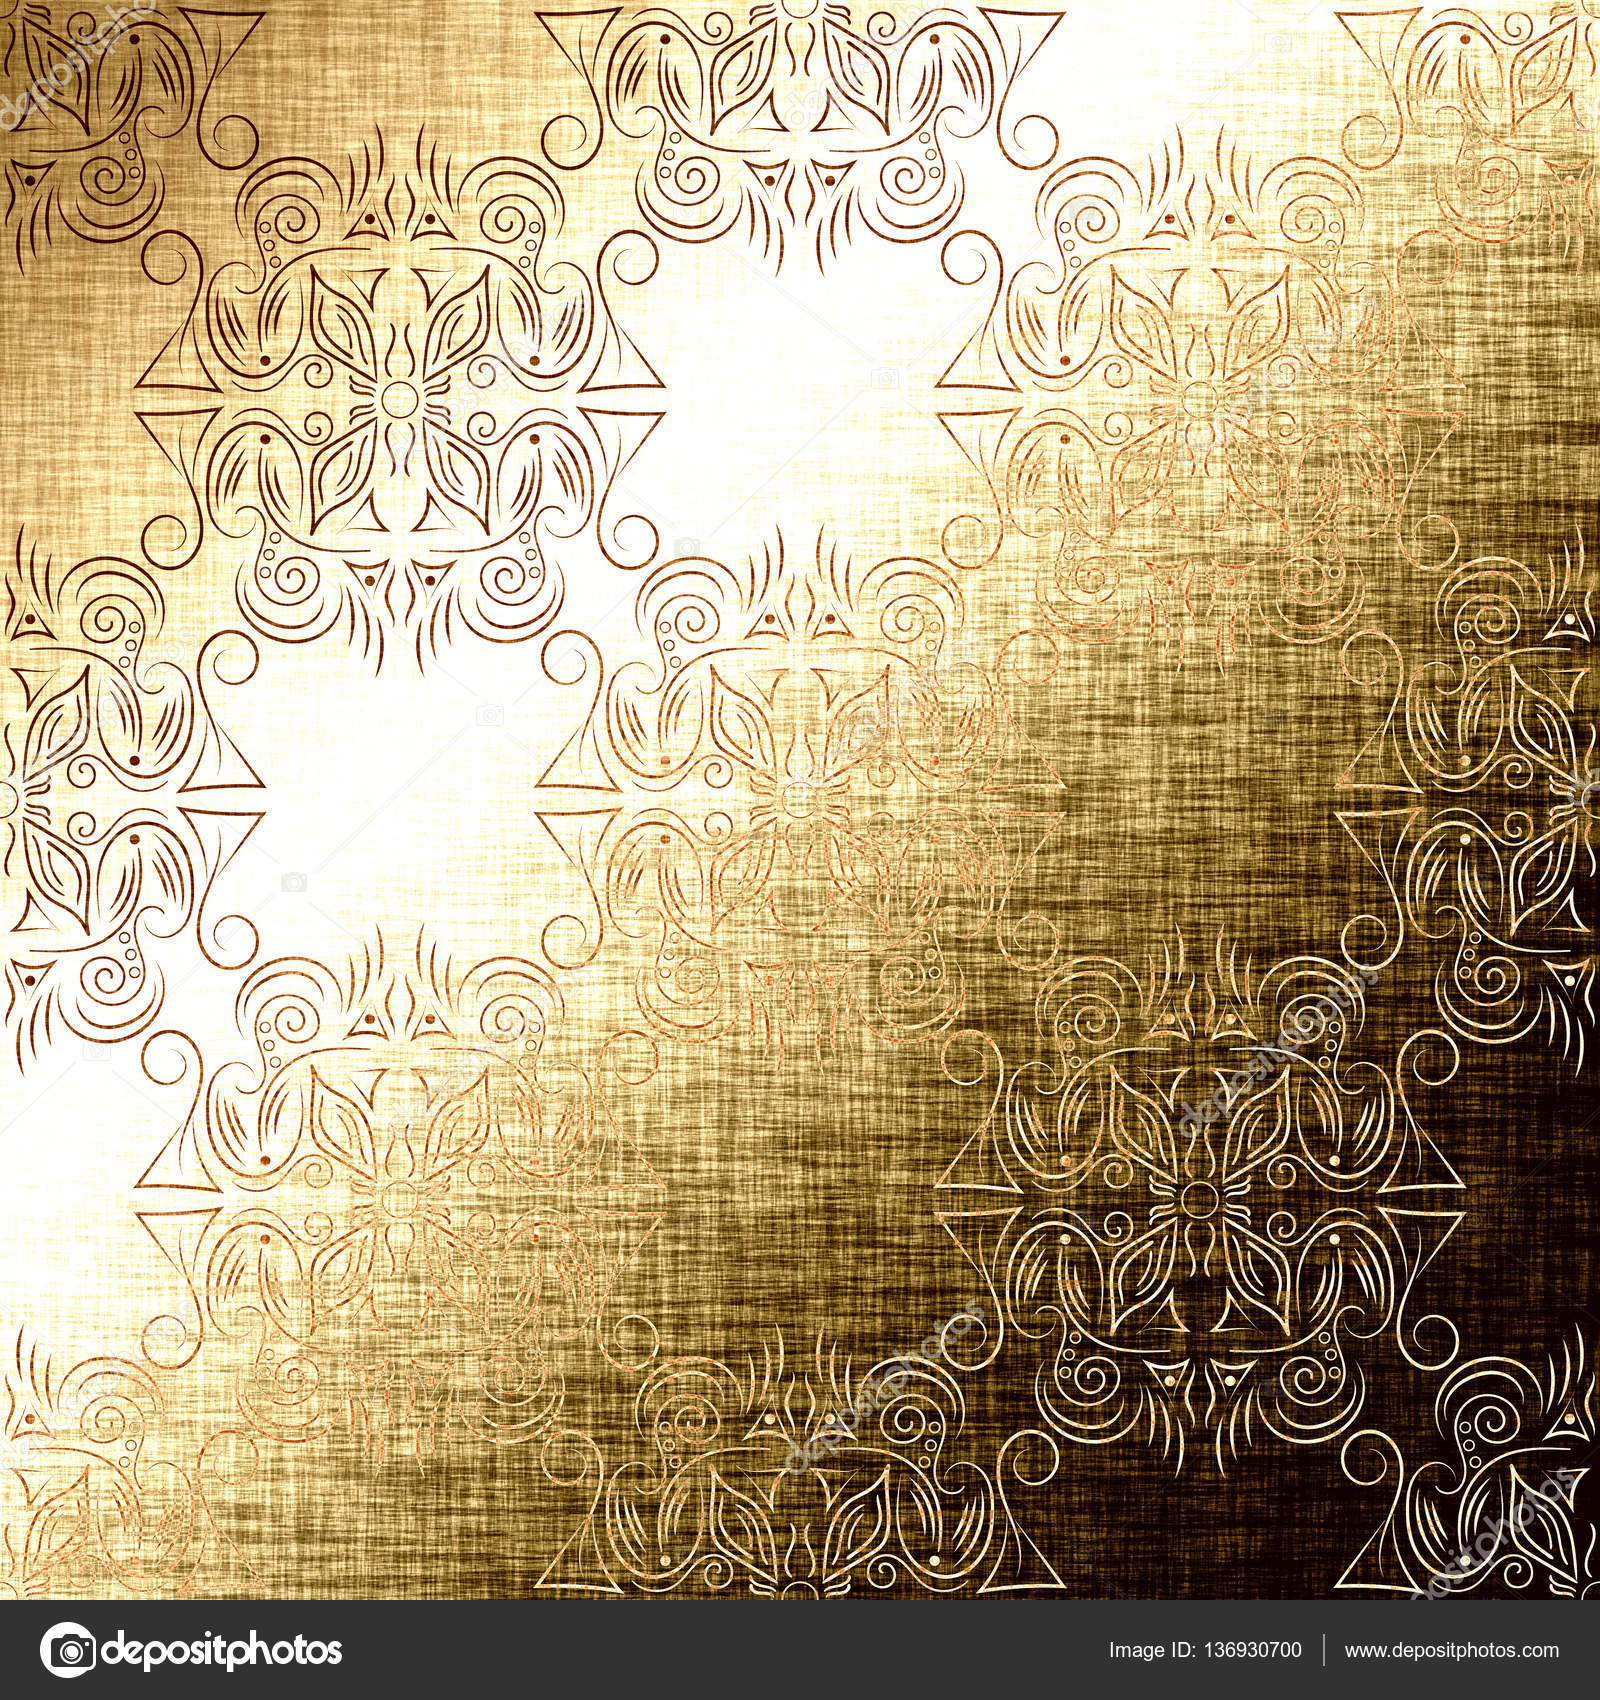 Gold Aztec And Mayan Pattern With Indian Traditional Elements Golden Foil Royal Texture For Textile Wallpapers Page Fill Book Covers Etc